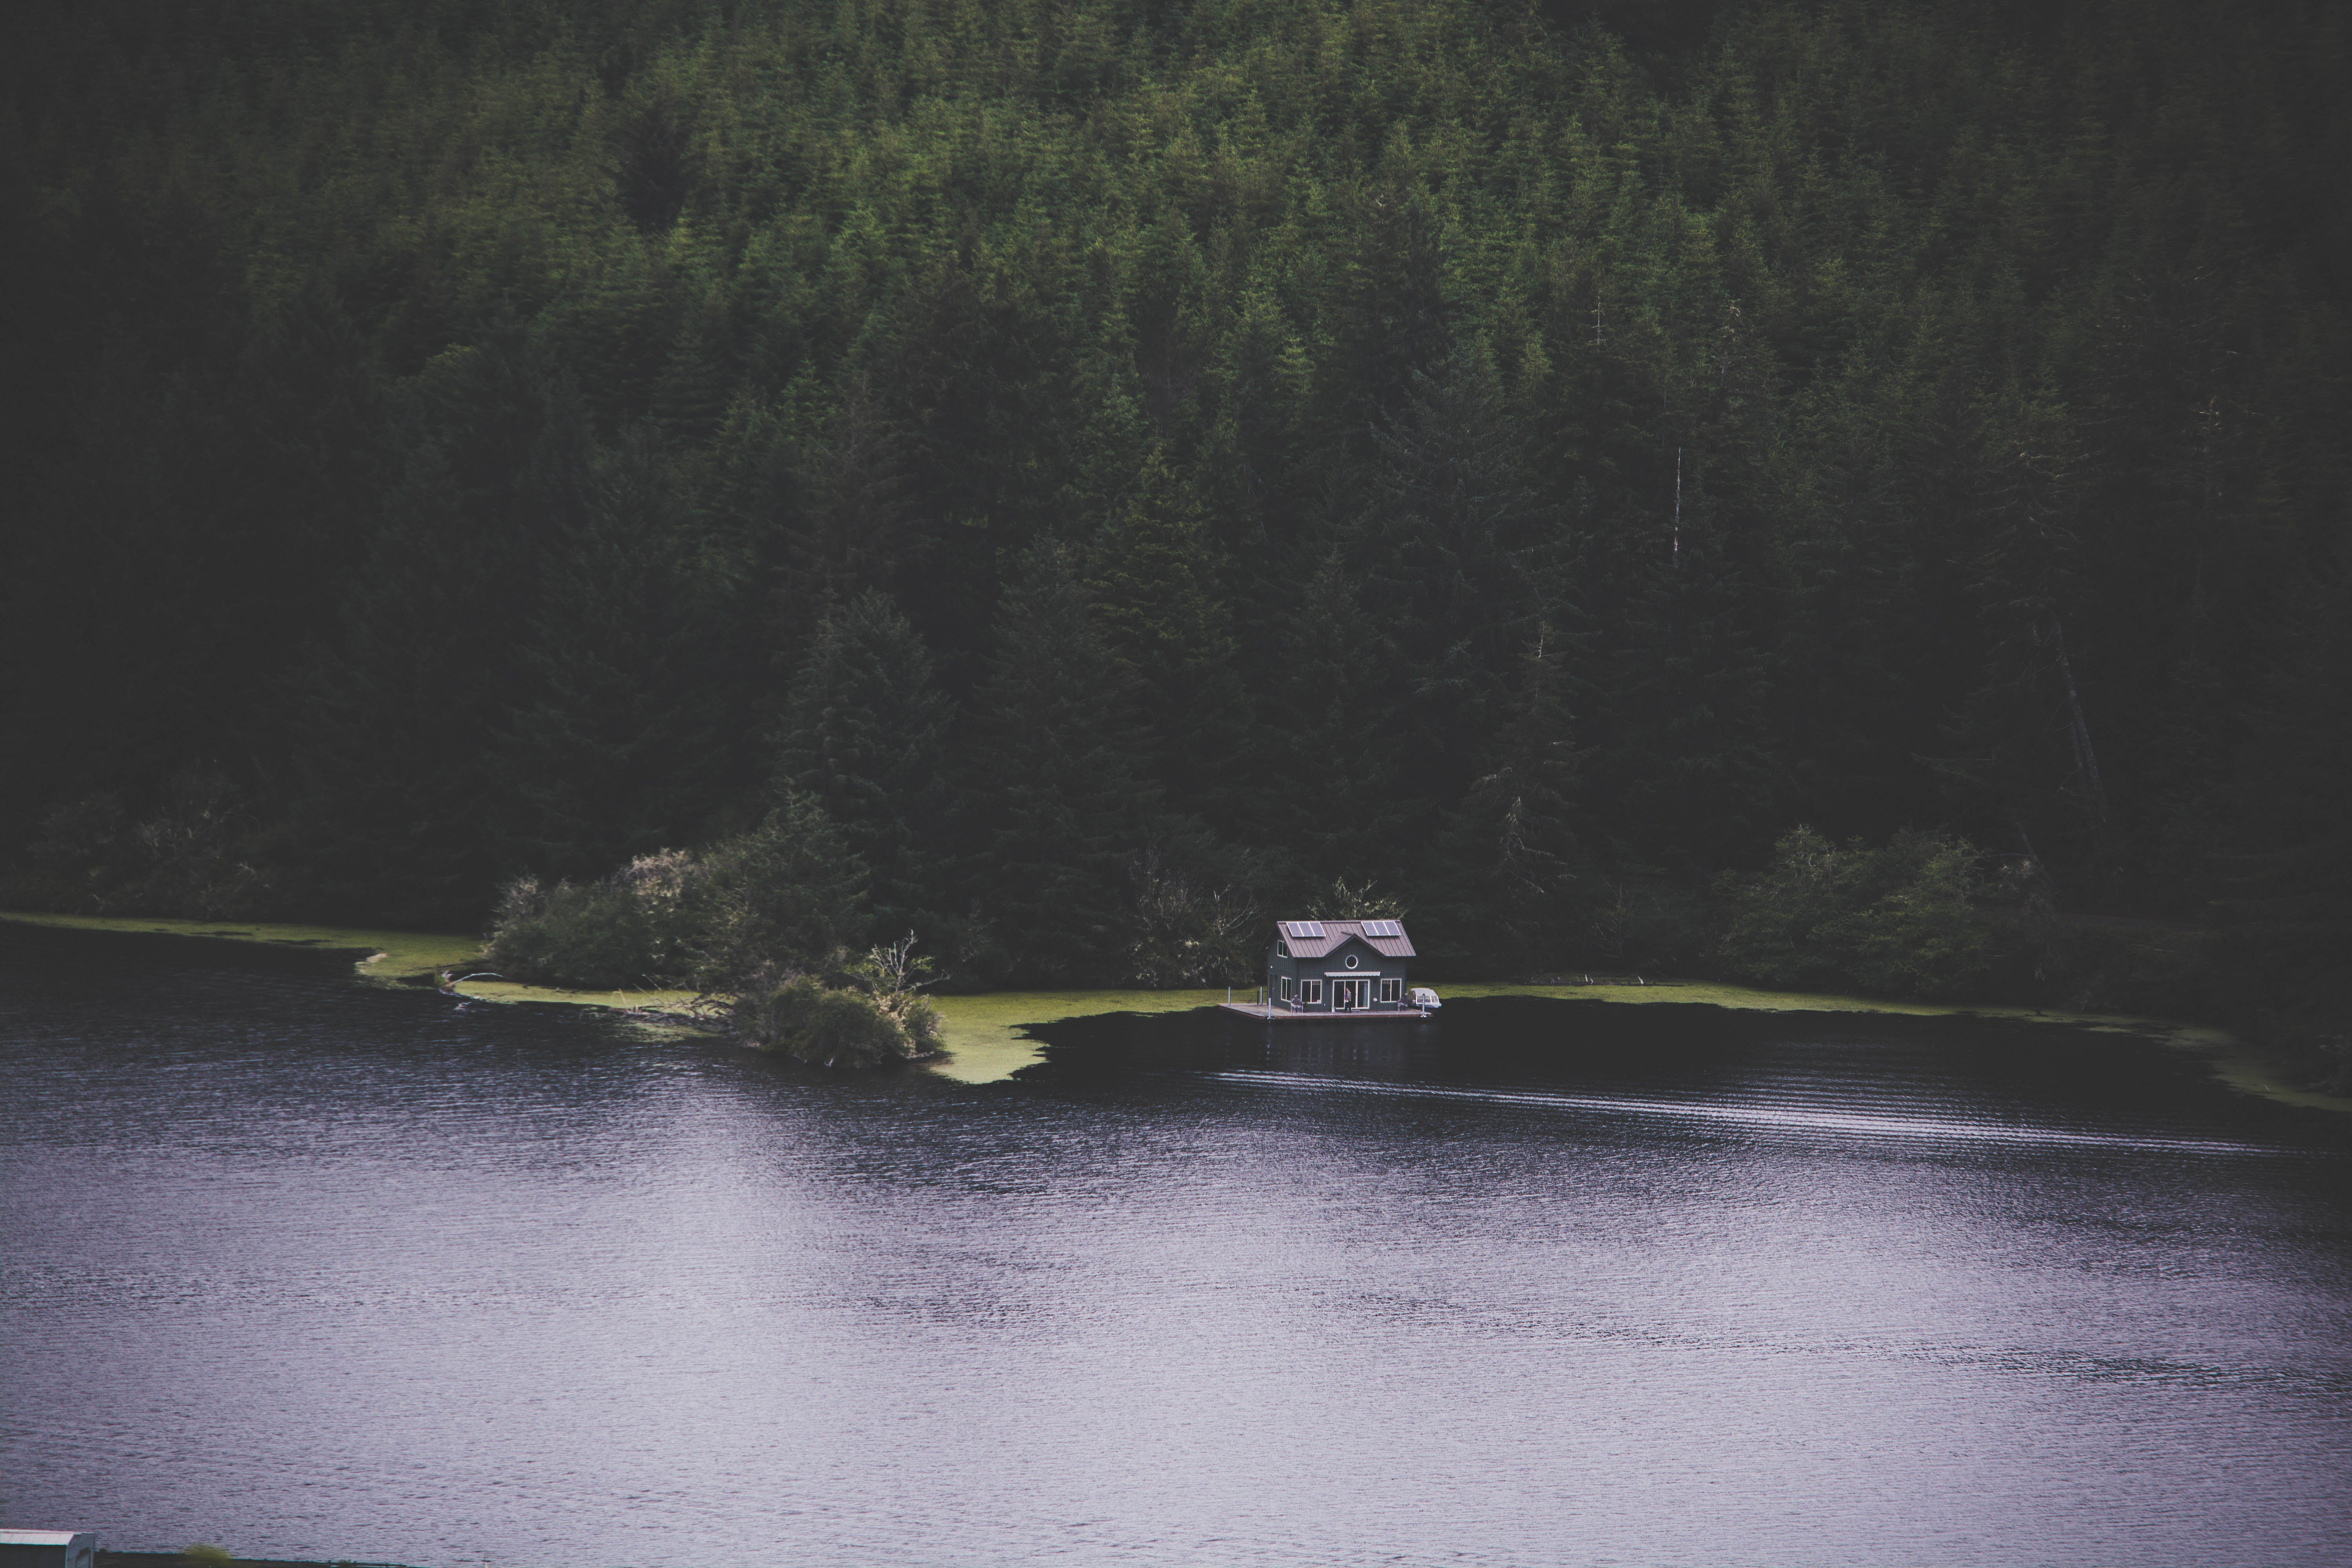 Cabin Near Pine Trees and Surrounded by Water